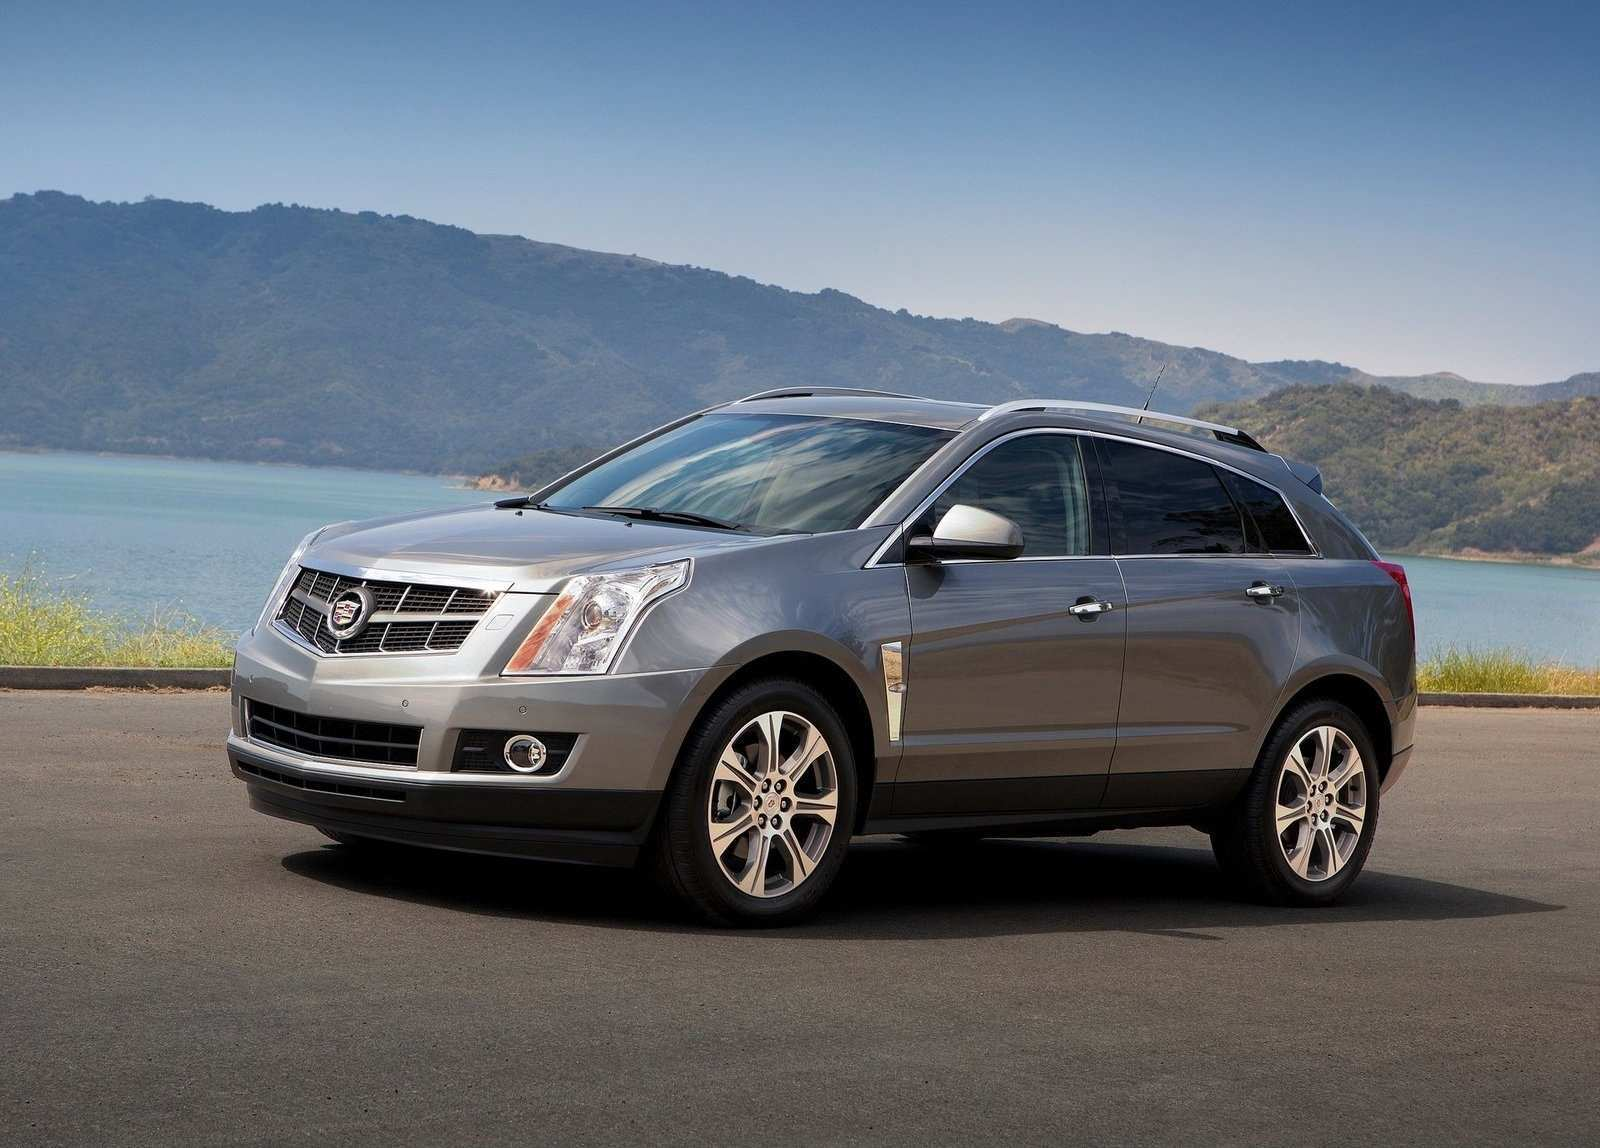 77 Best Review The Cadillac 2019 Srx Review And Release Date Exterior with The Cadillac 2019 Srx Review And Release Date